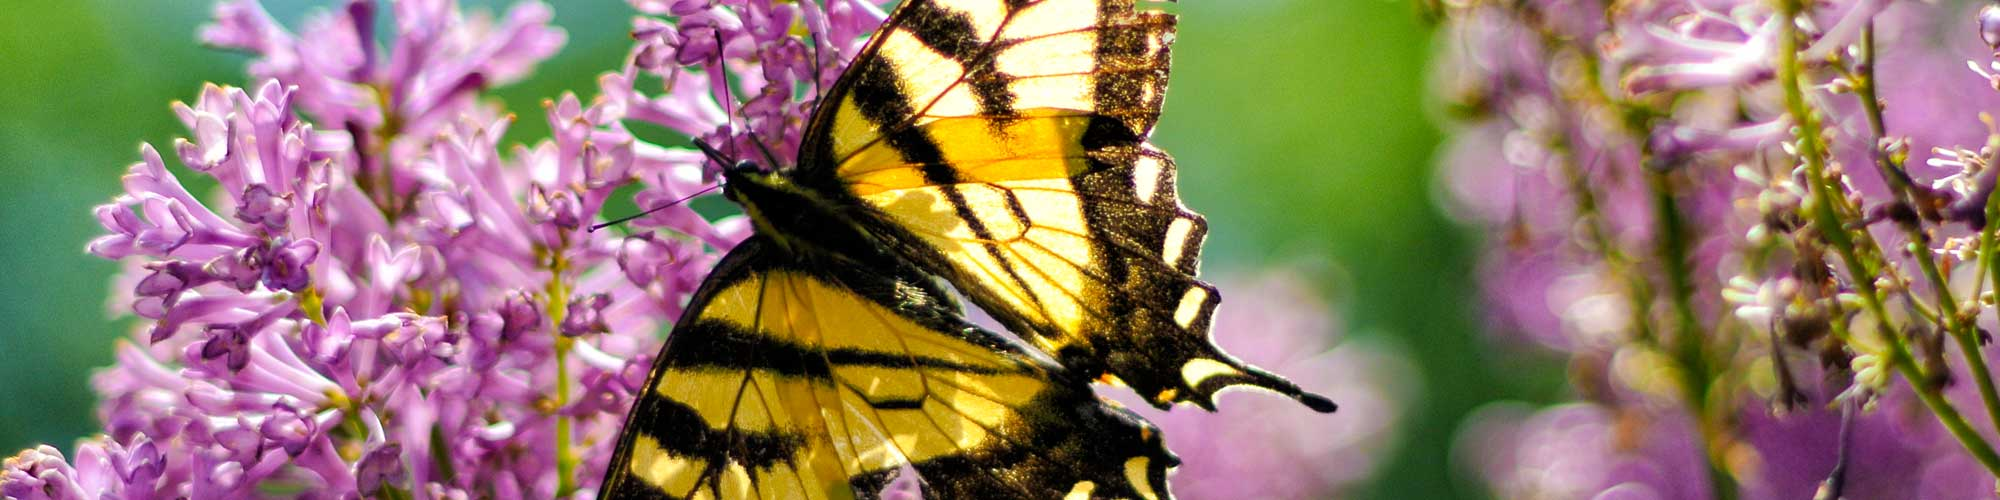 Swallowtail butterfly on lilacs